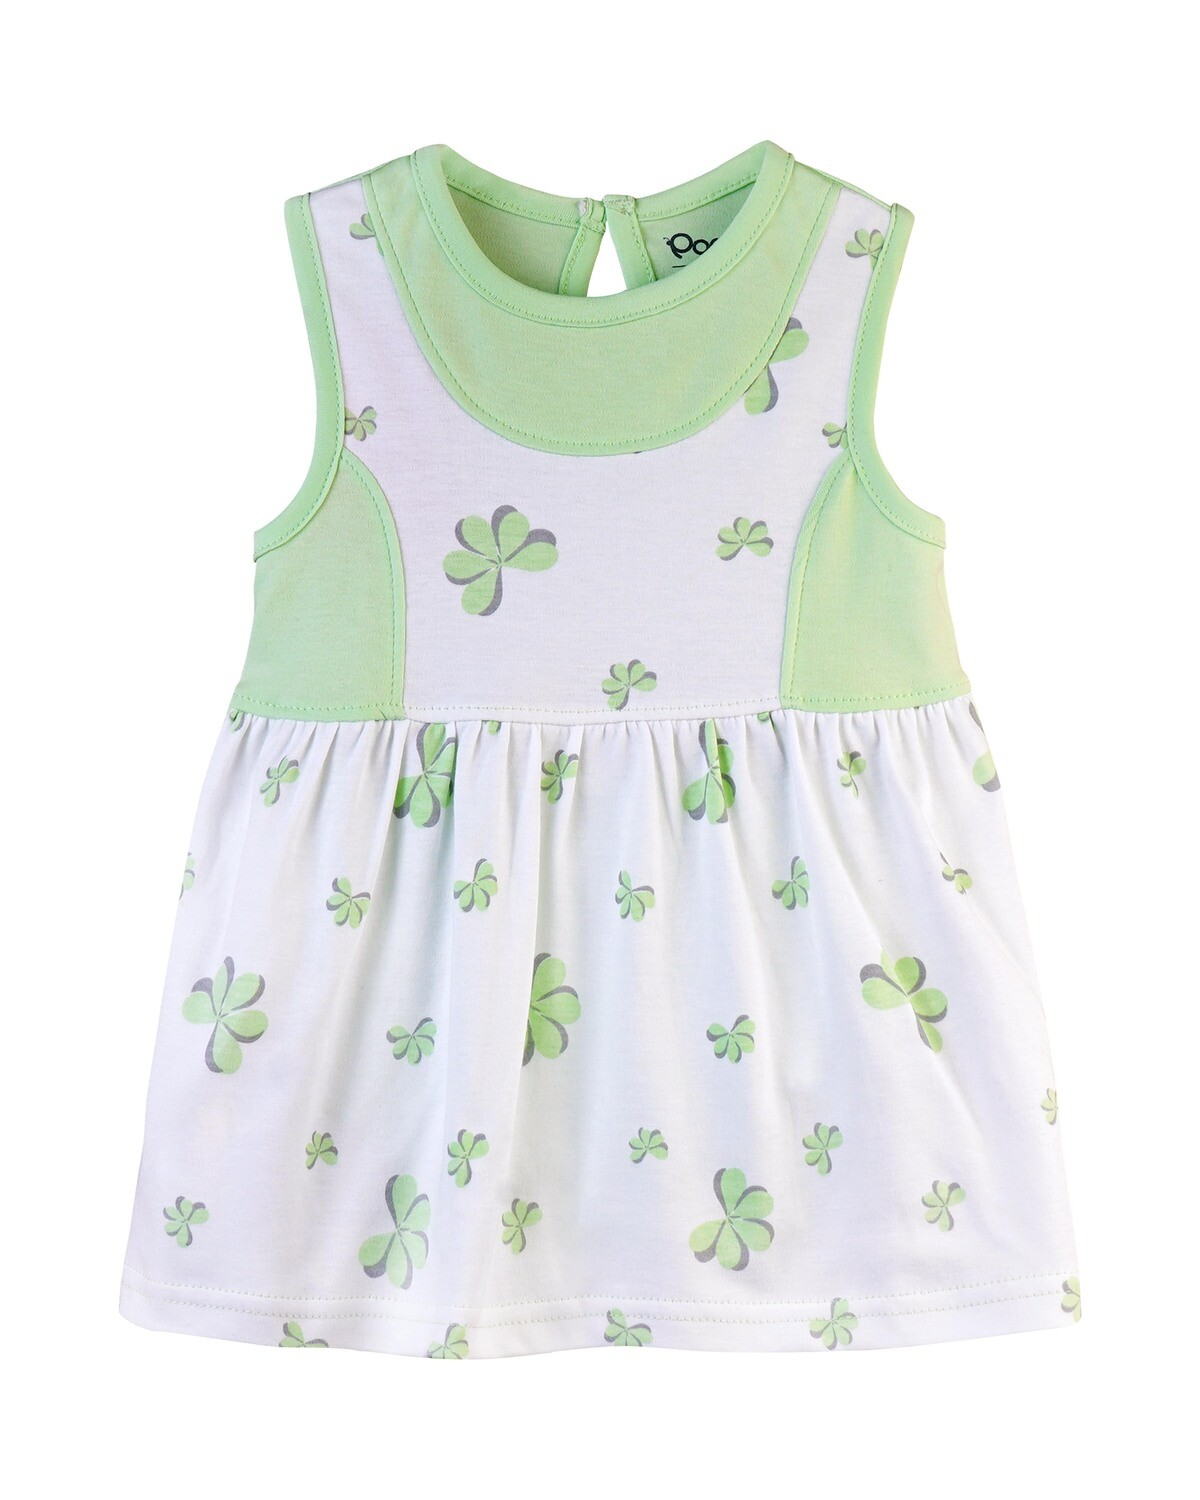 ESTELLE Paradise Green Sleeveless Frock and Panties for Baby Girls